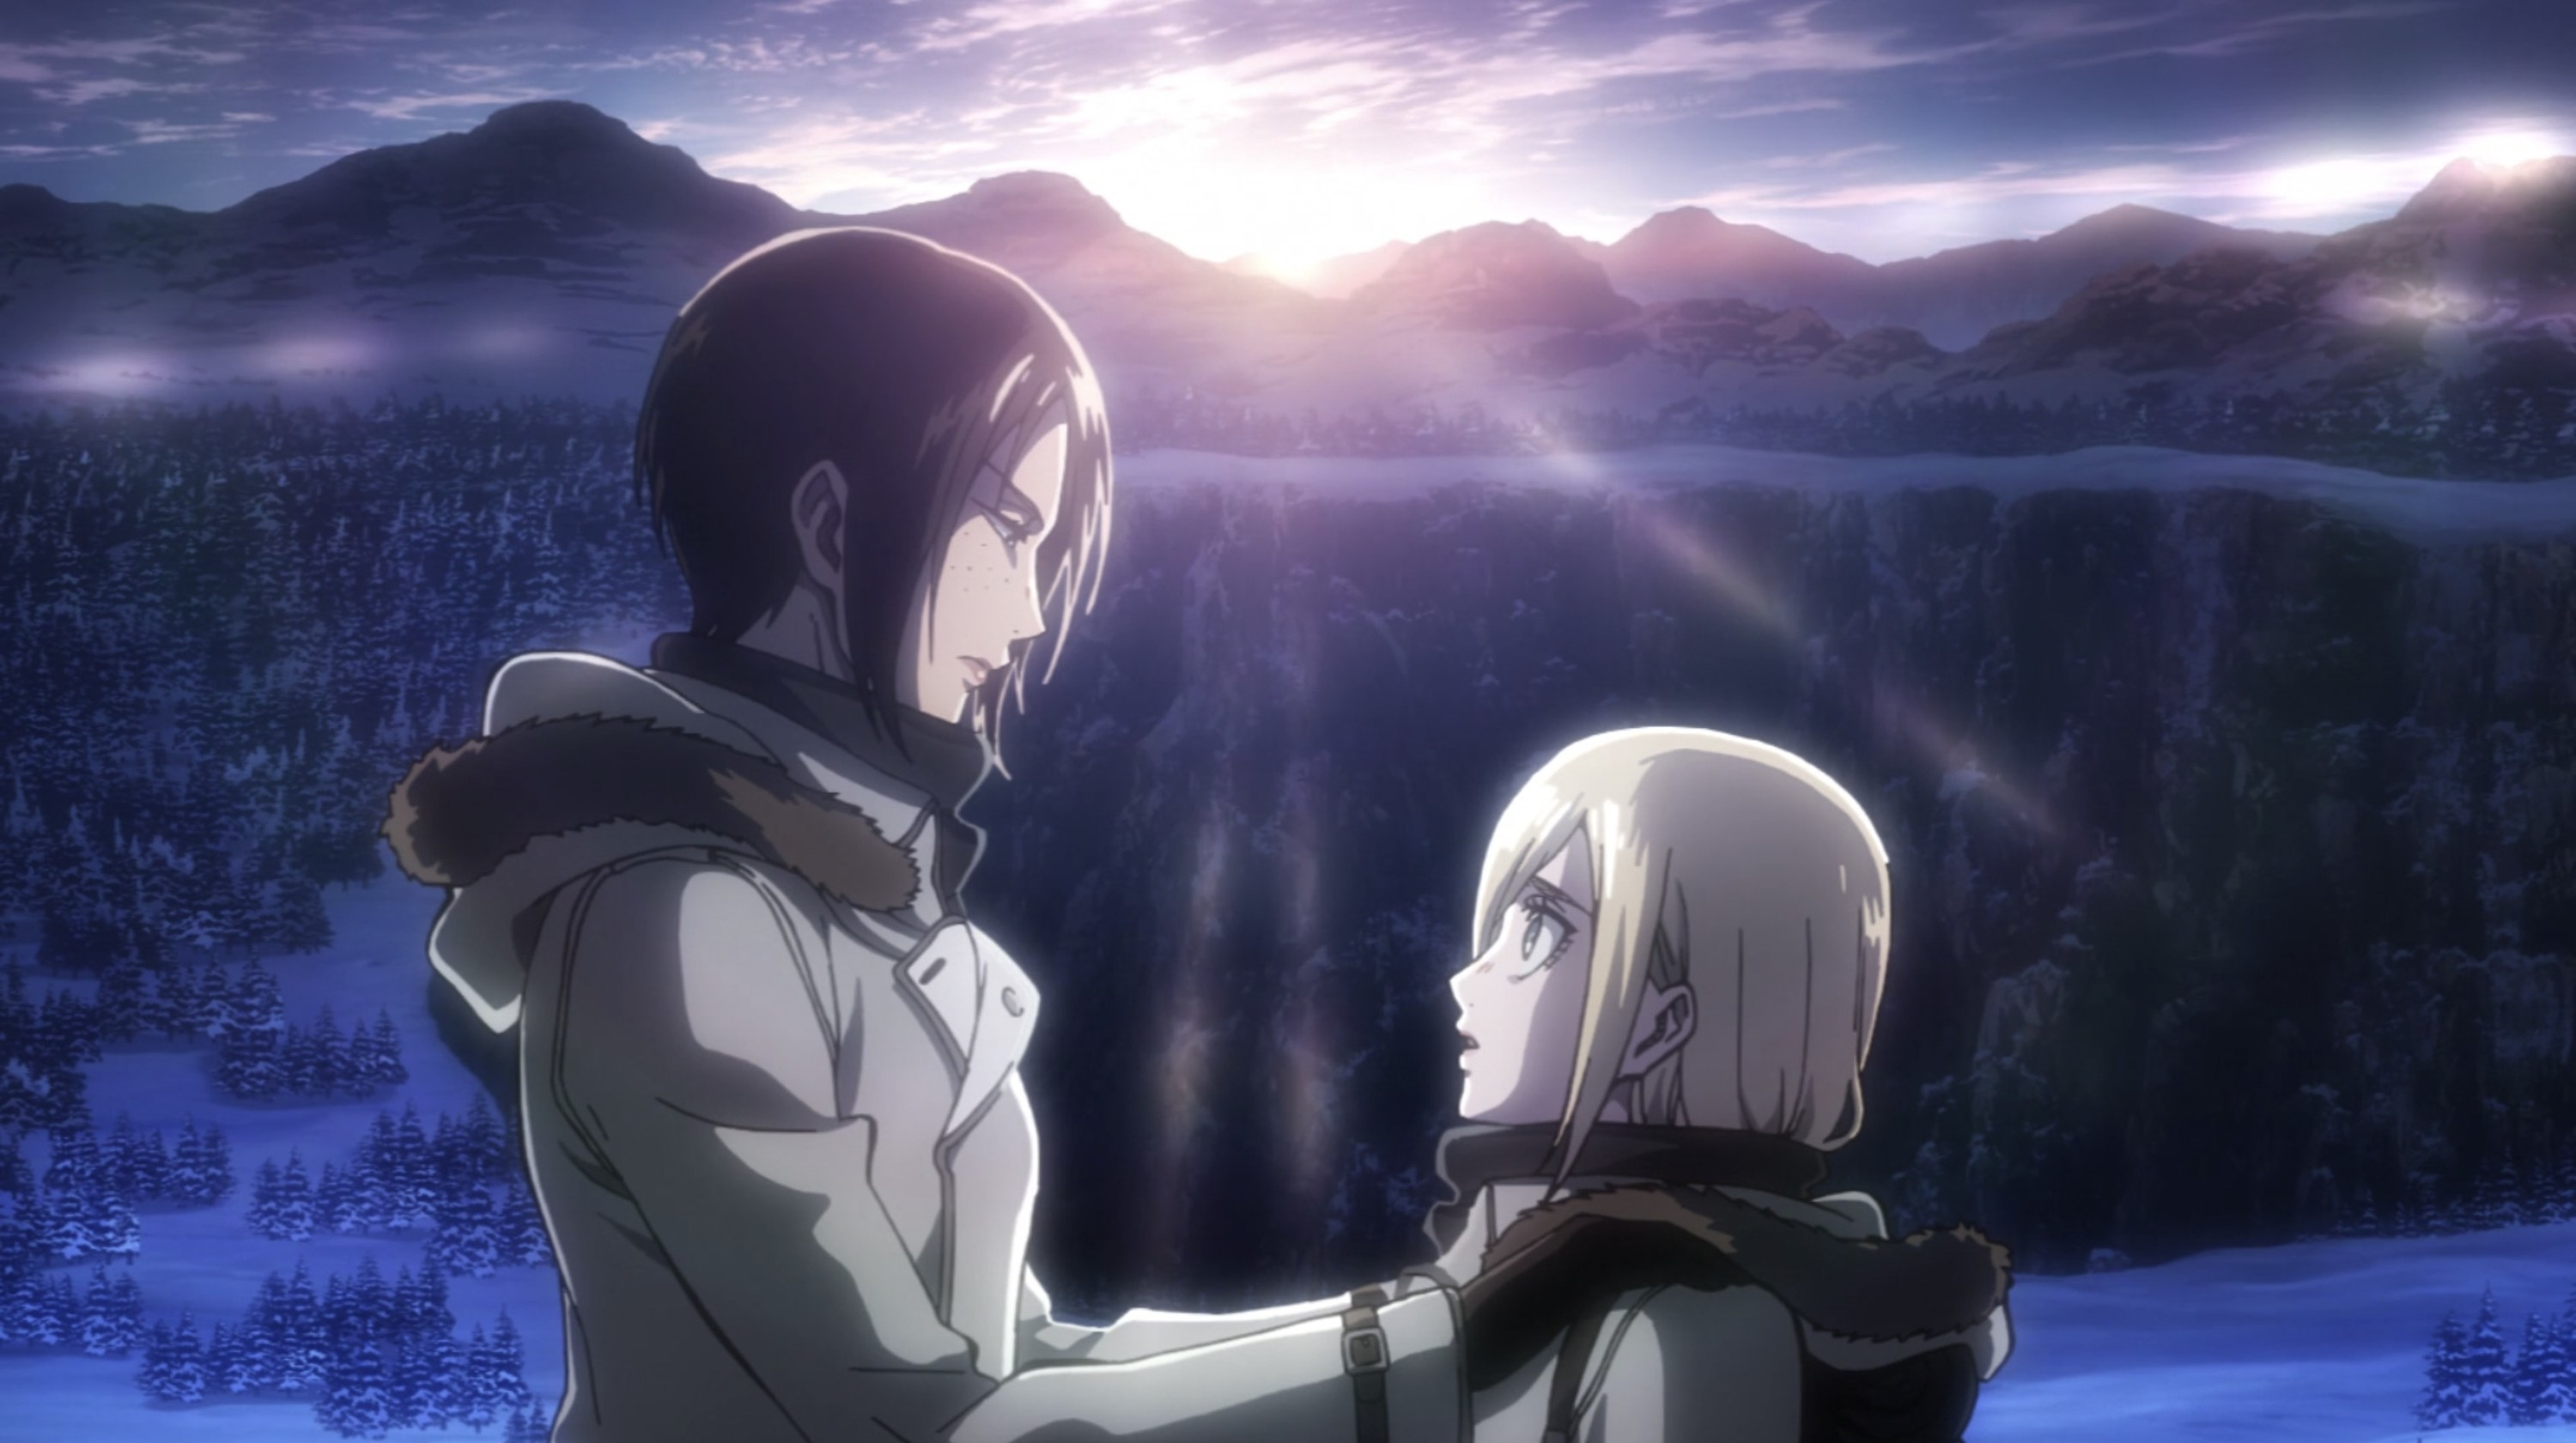 Ymir and Christa looking into each other's eyes while overlooking the snowy mountains.